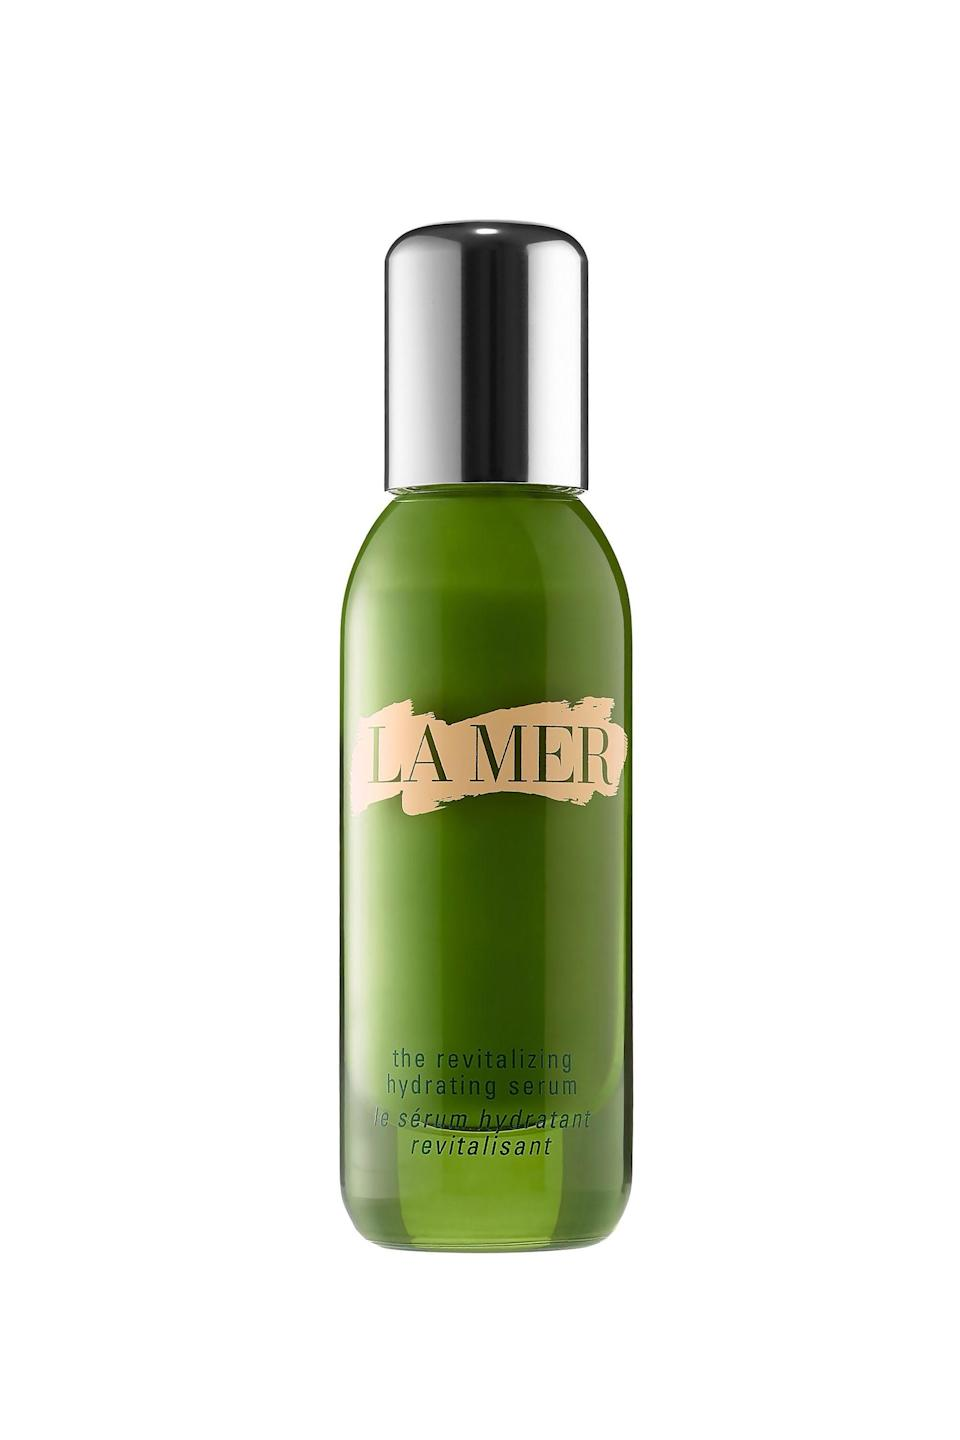 """<p><strong>La Mer</strong></p><p>neimanmarcus.com</p><p><strong>$230.00</strong></p><p><a href=""""https://go.redirectingat.com?id=74968X1596630&url=https%3A%2F%2Fwww.neimanmarcus.com%2Fp%2Fprod196390154&sref=https%3A%2F%2Fwww.elle.com%2Fbeauty%2Fmakeup-skin-care%2Ftips%2Fg8091%2Fface-serum%2F"""" rel=""""nofollow noopener"""" target=""""_blank"""" data-ylk=""""slk:Shop Now"""" class=""""link rapid-noclick-resp"""">Shop Now</a></p><p>When tall drinks of water and a constantly running humidifier aren't doing the job for your parched skin, douse it with this seriously hydrating serum. Like La Mer's other offerings, this formula mines the power of the ocean to save your face (in this case drenching it with a nourishing algae blend).</p>"""